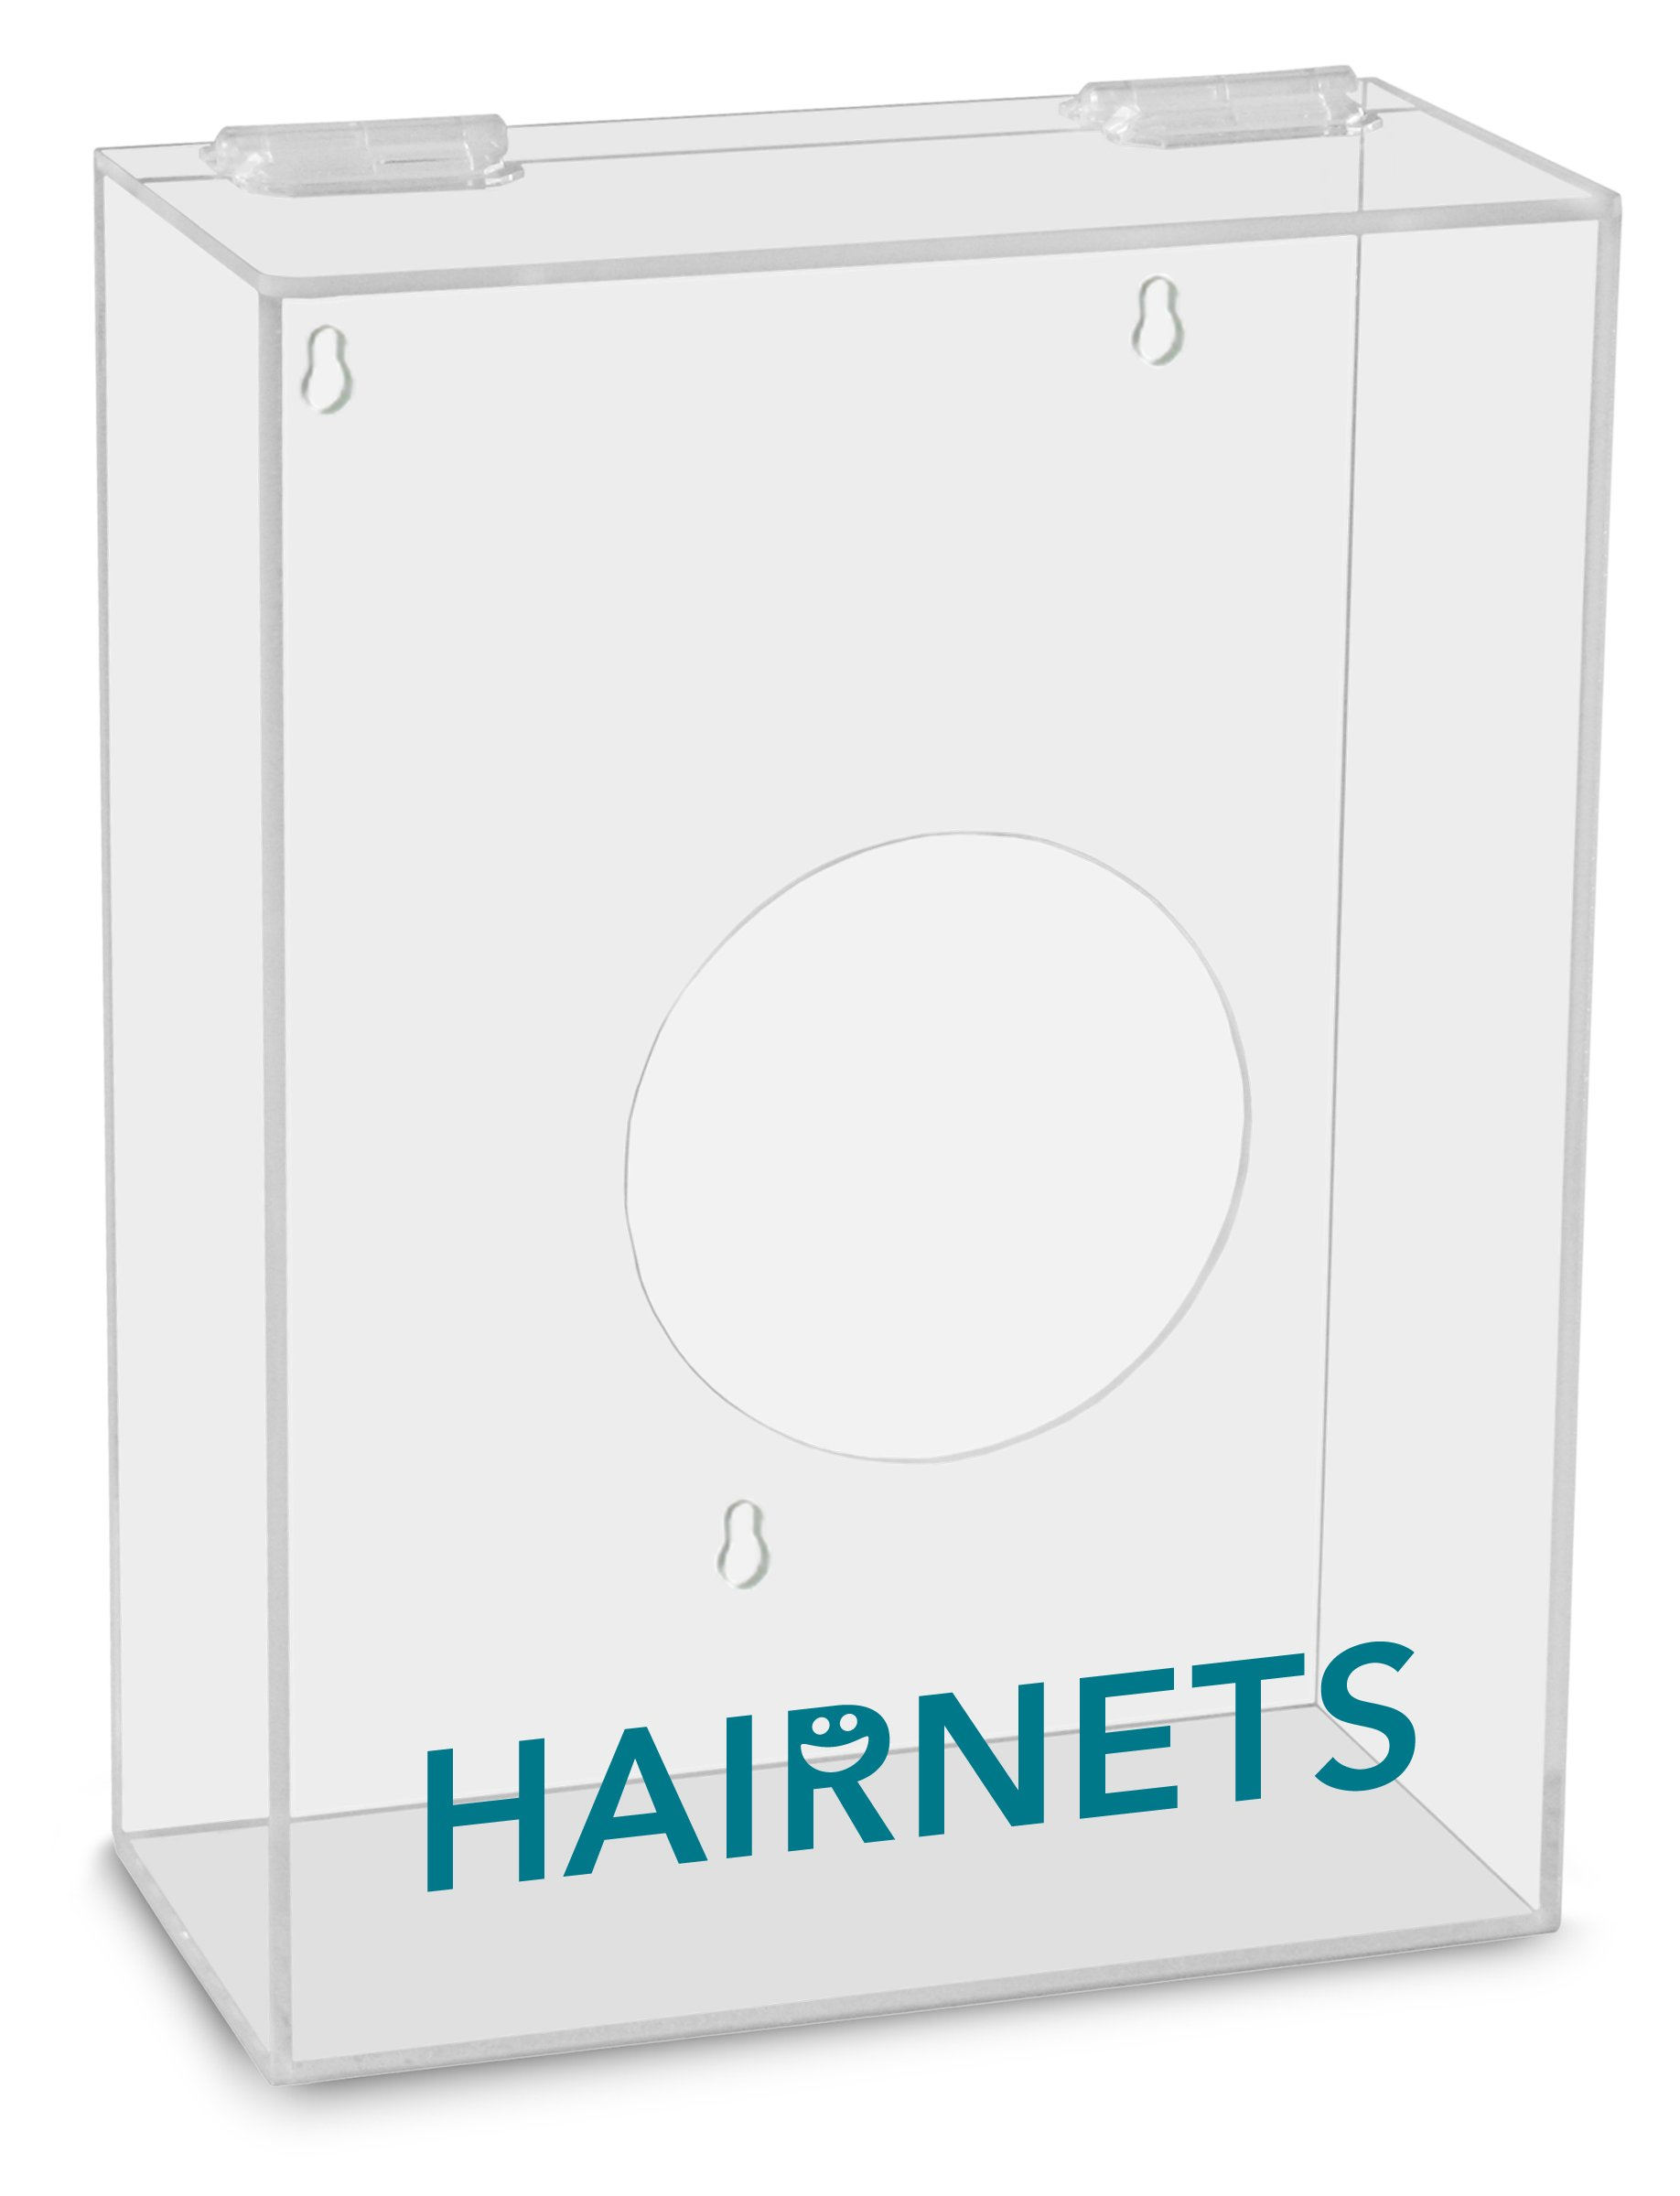 TrippNT 51308 Hairnets Labeled Small Apparel Dispenser, 9'' Width x 12'' Height x 4'' Depth